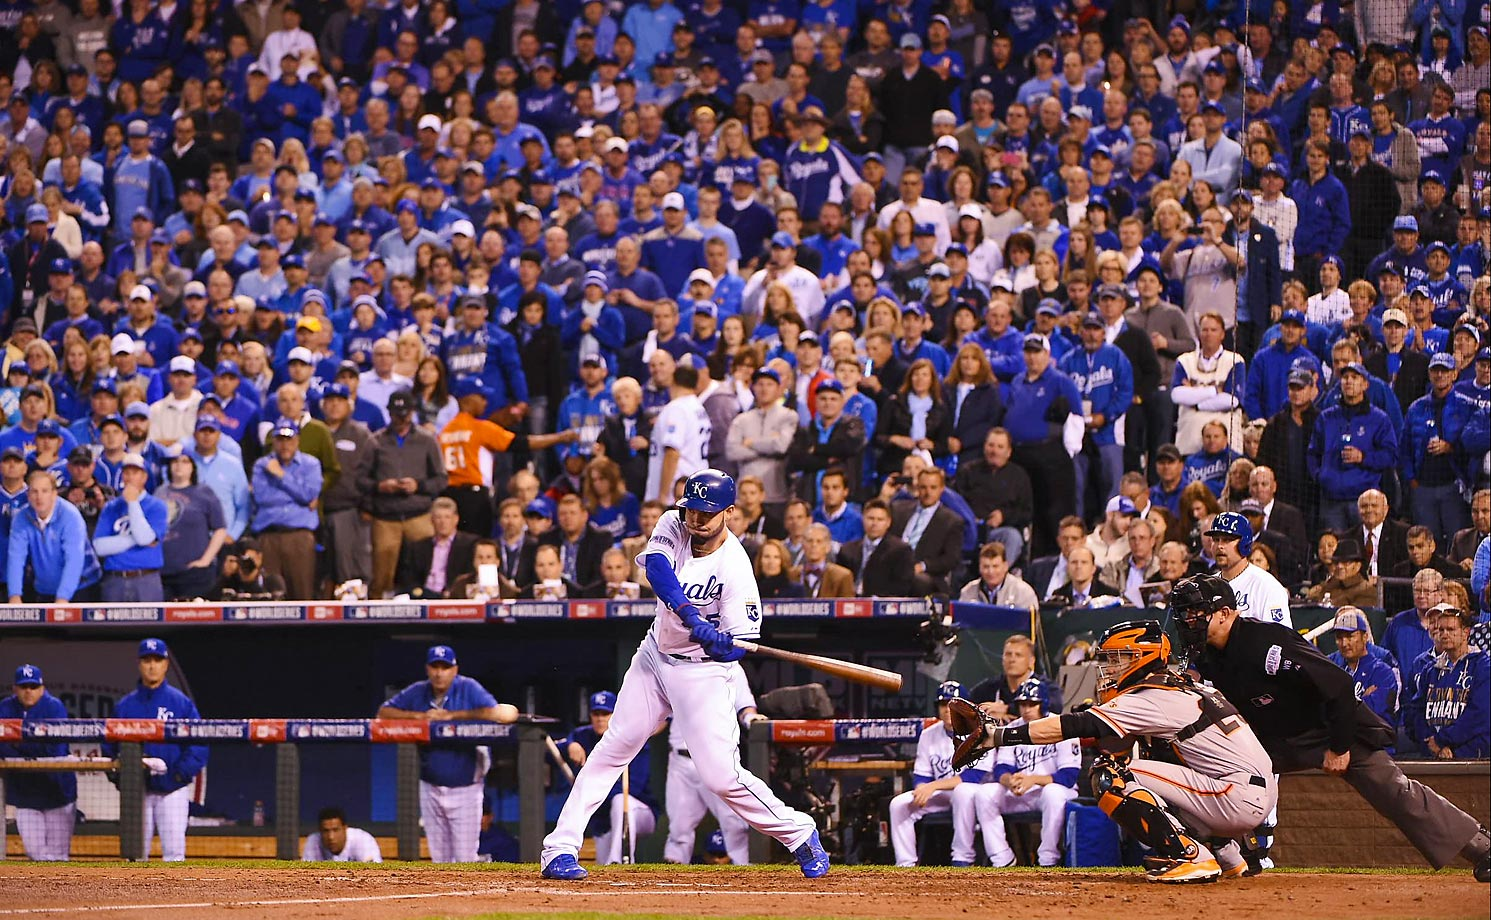 Kansas City Royals first baseman Eric Hosmer connects for a two run double in the second inning.